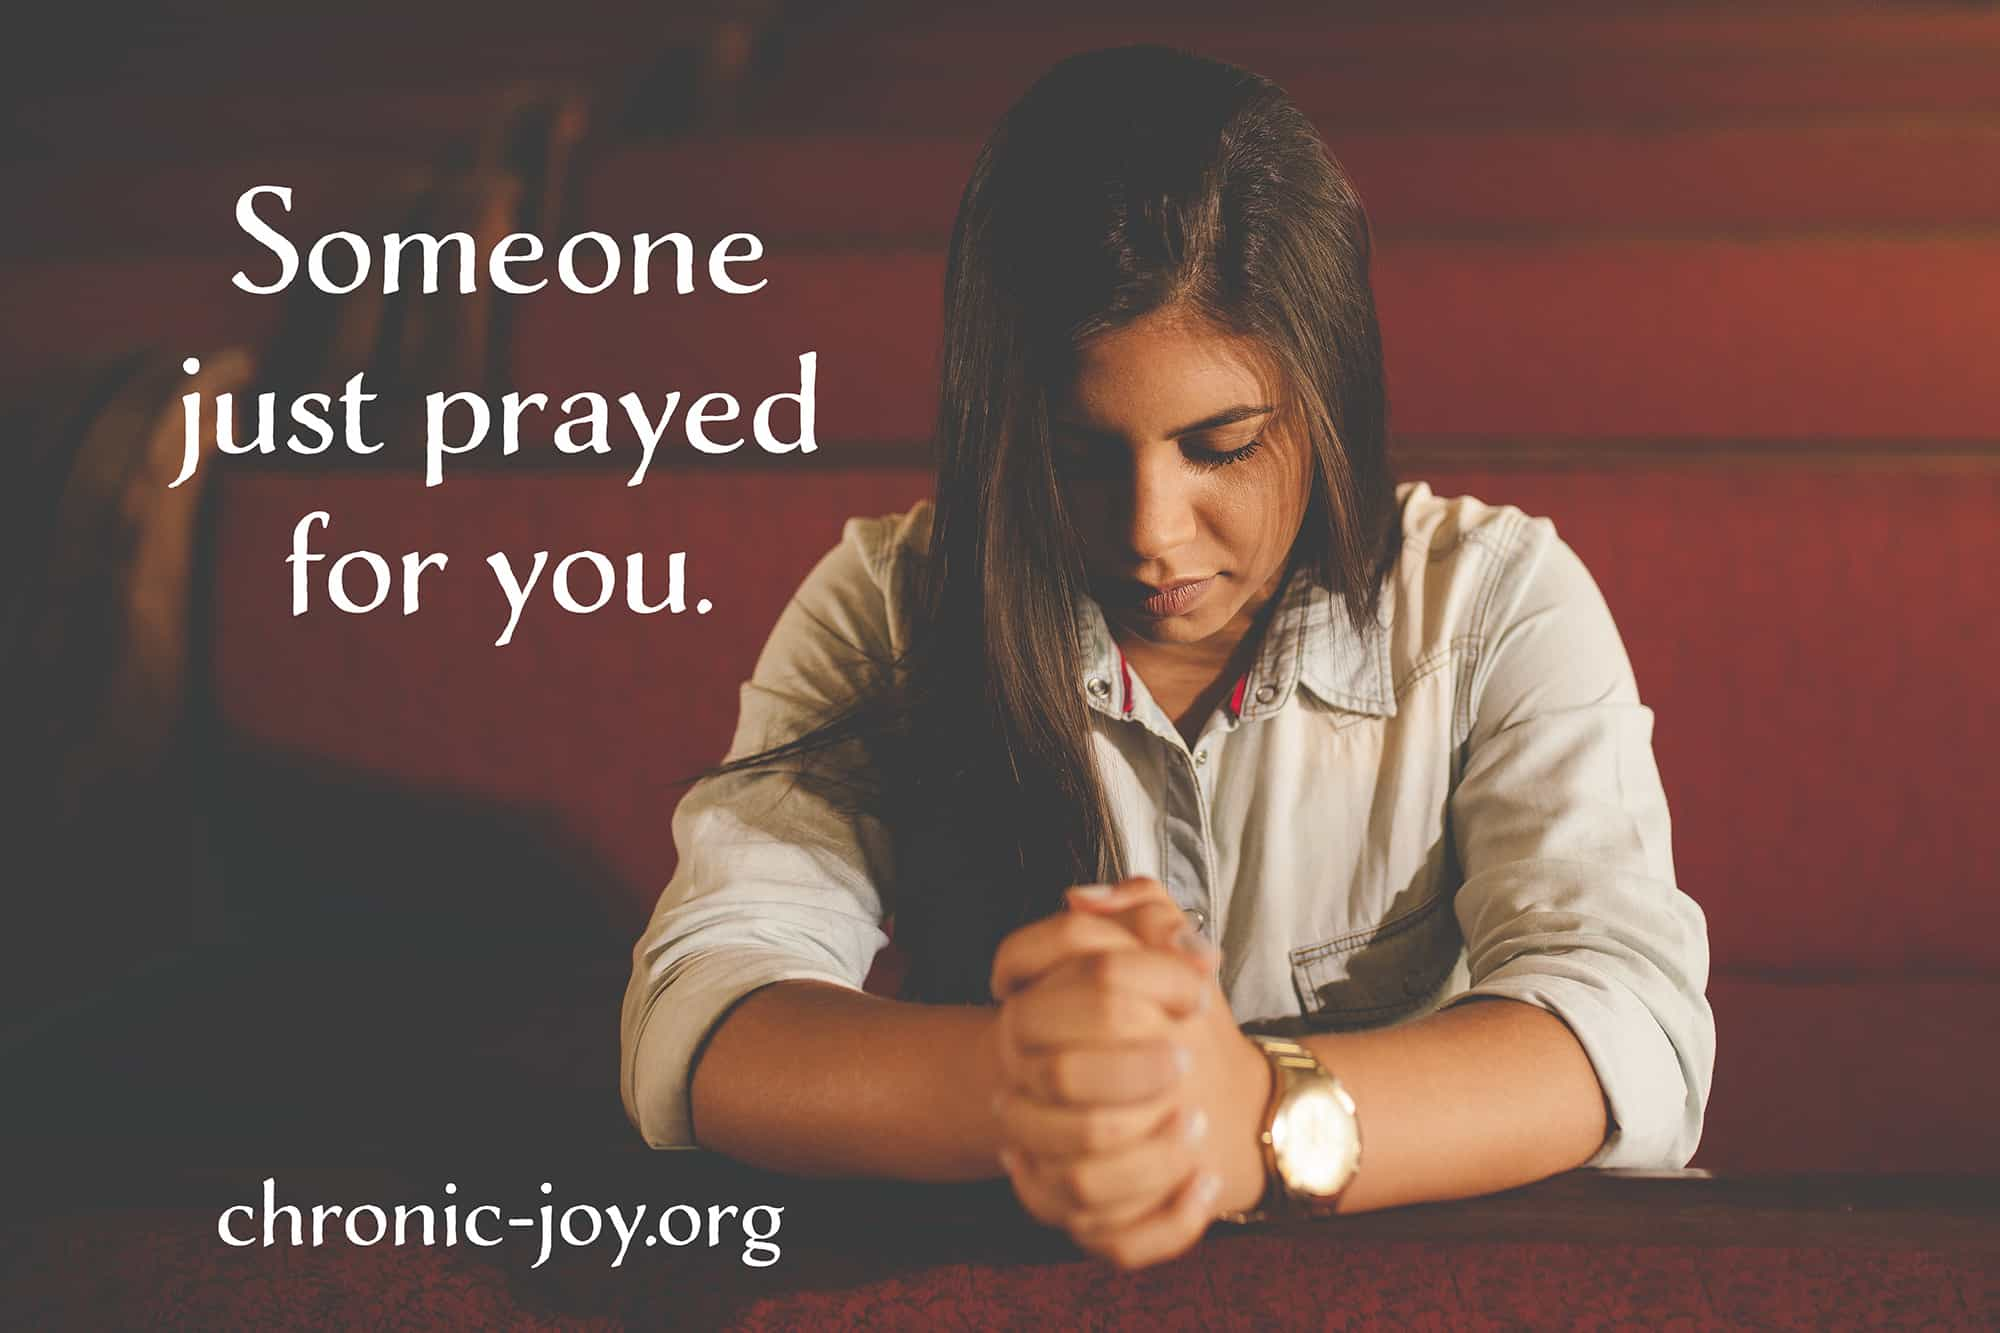 Someone just prayed for you.